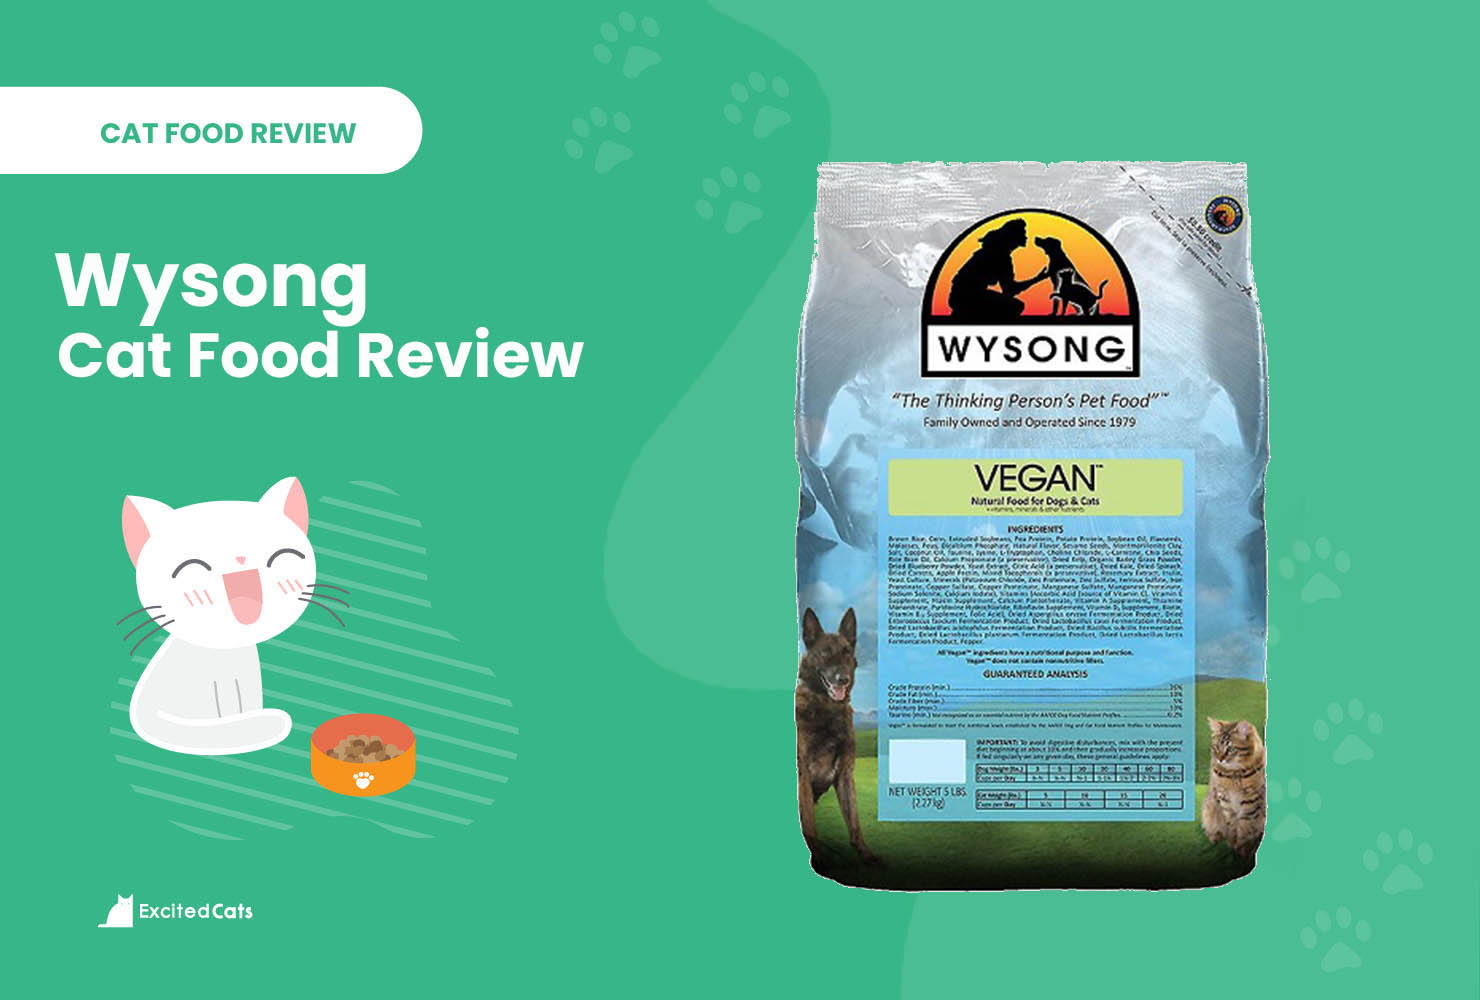 wysong cat food review